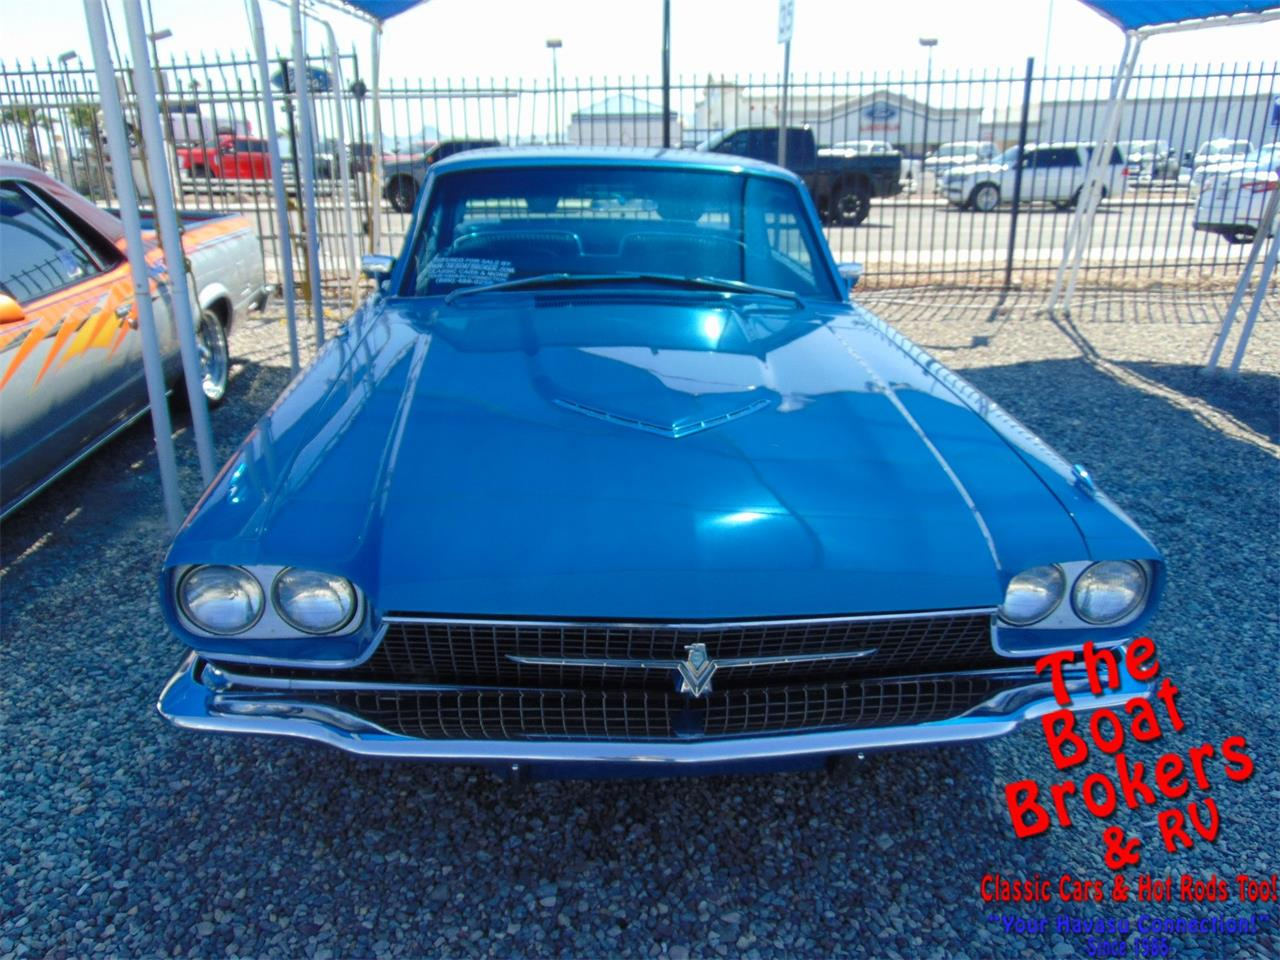 Large Picture of Classic 1966 Ford Thunderbird - $15,995.00 Offered by The Boat Brokers - PQRZ